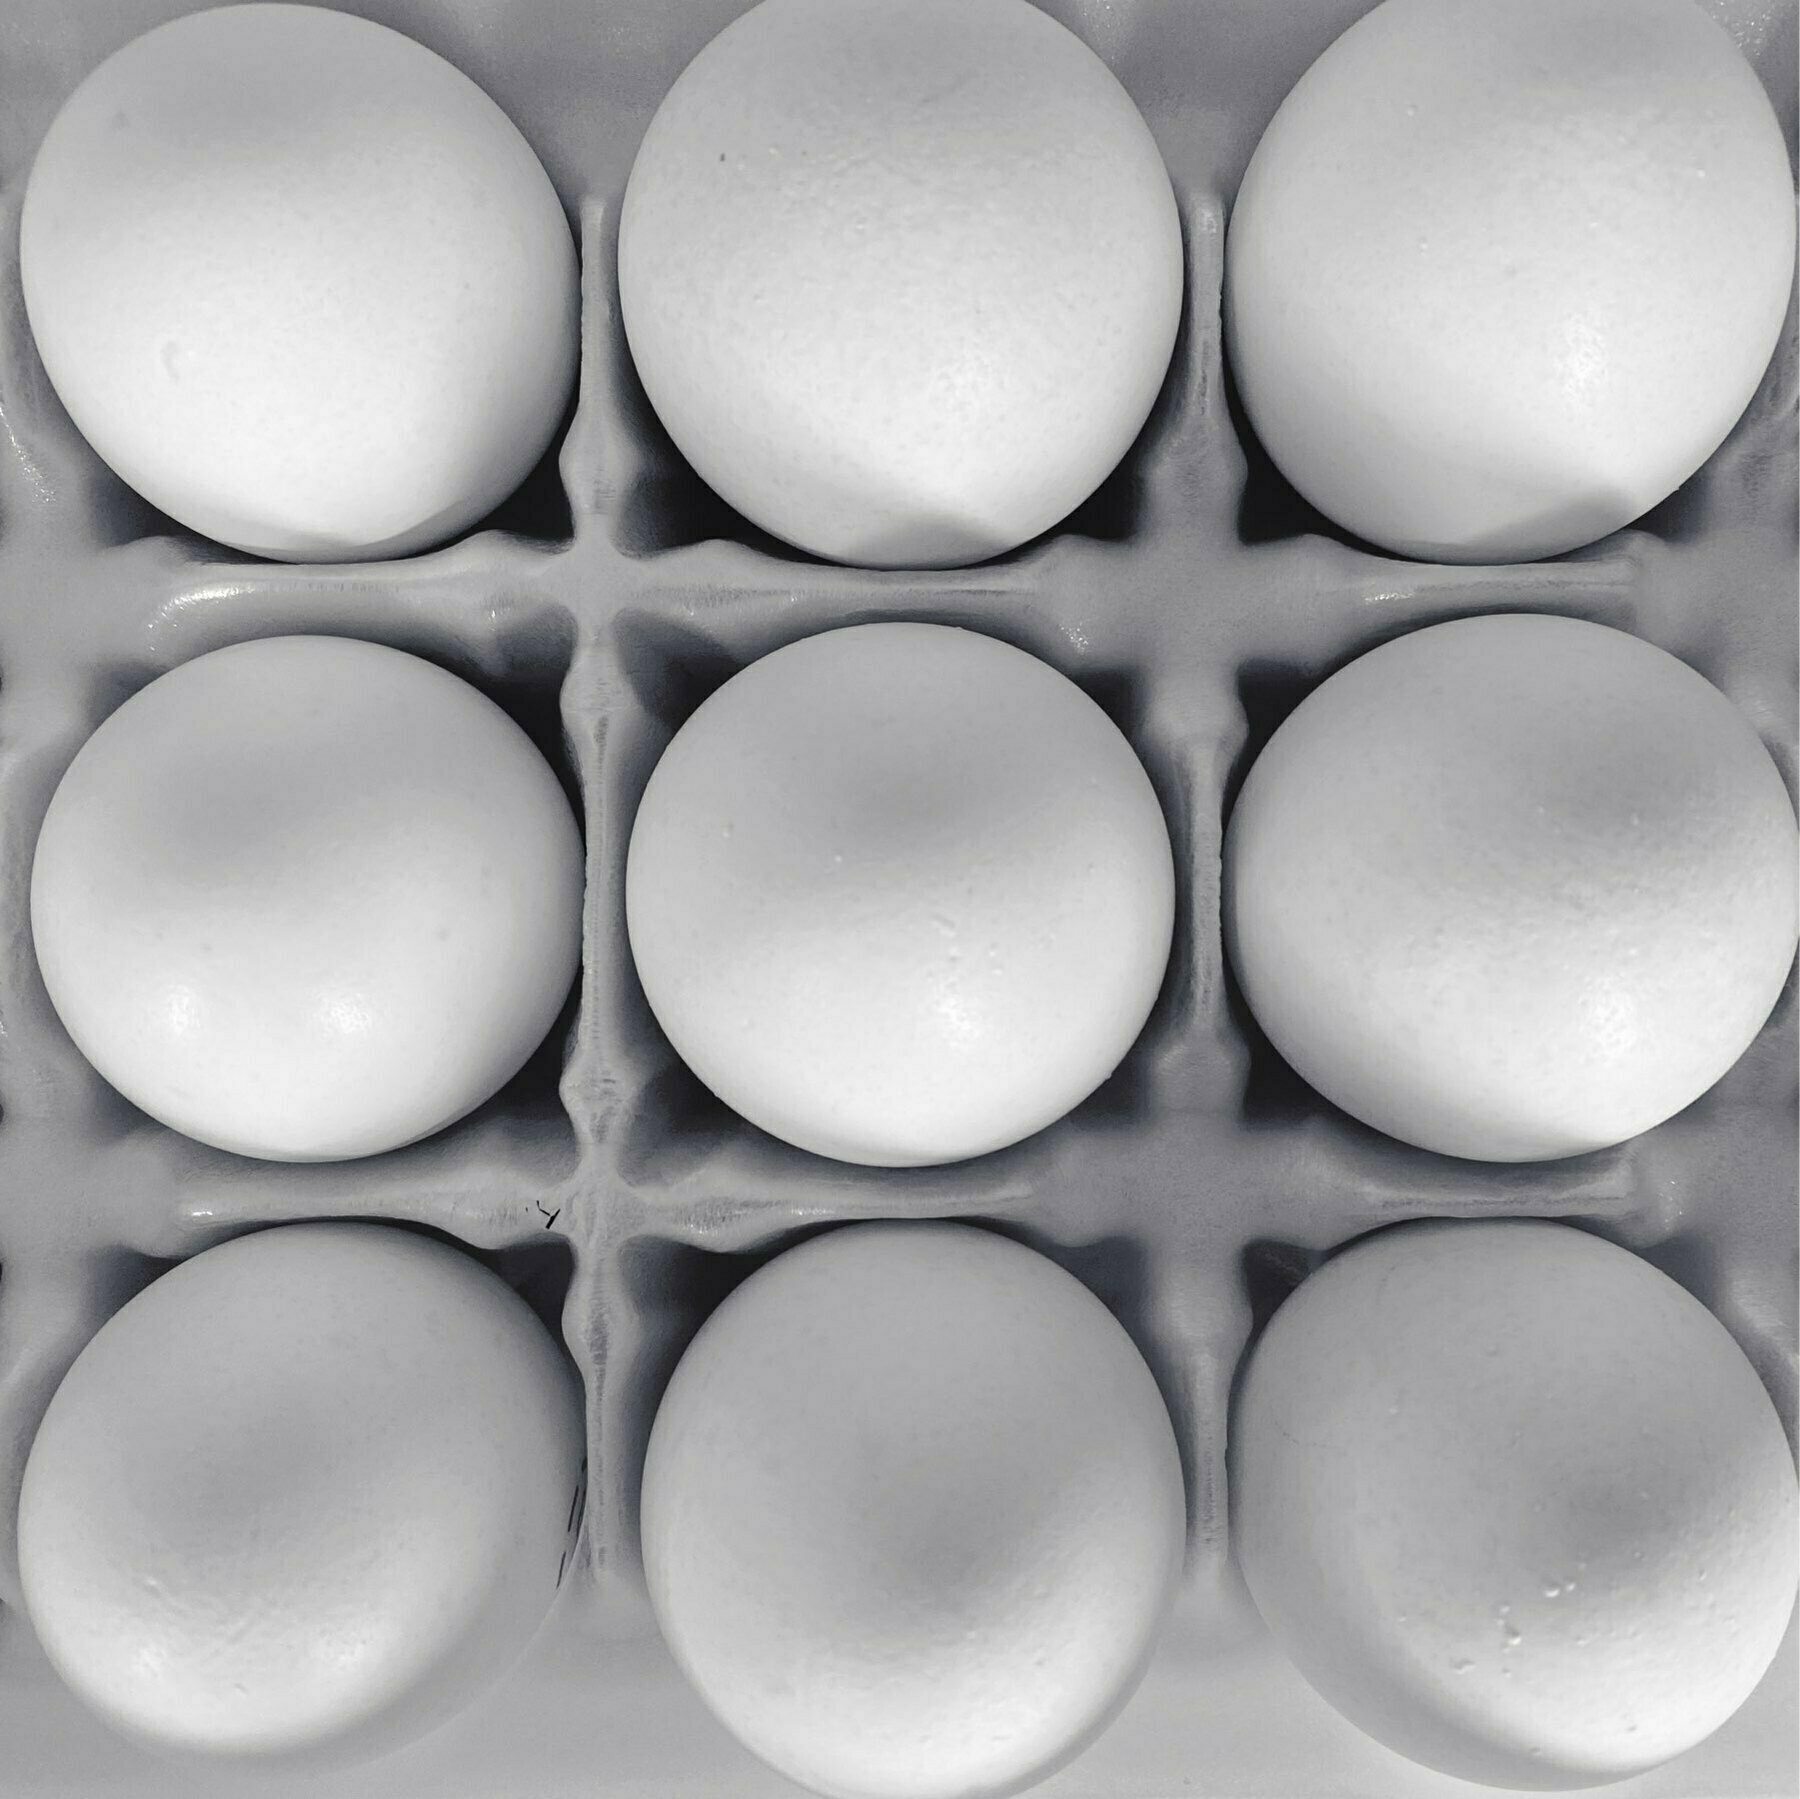 a top-down view of the inside of an egg carton